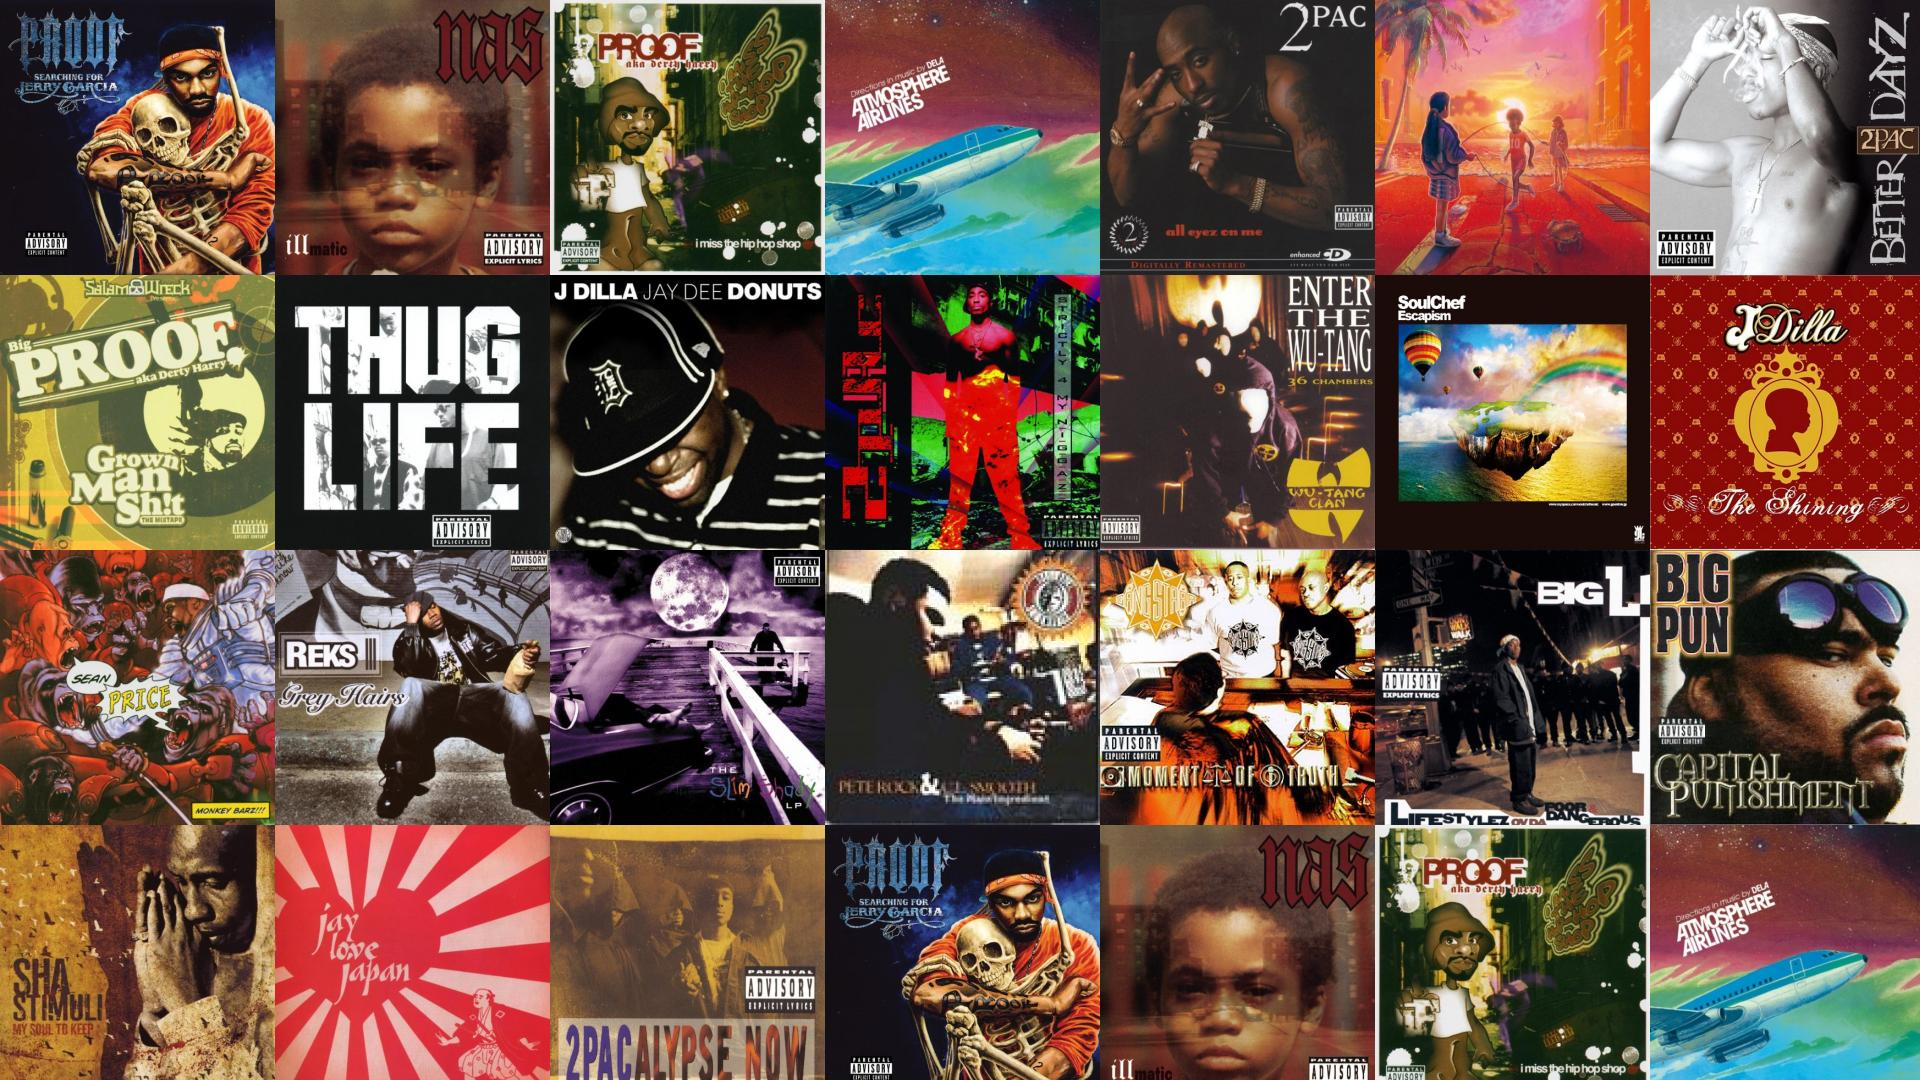 Proof Searching For Jerry Garcia Nas Illmatic I Wallpaper Tiled Desktop